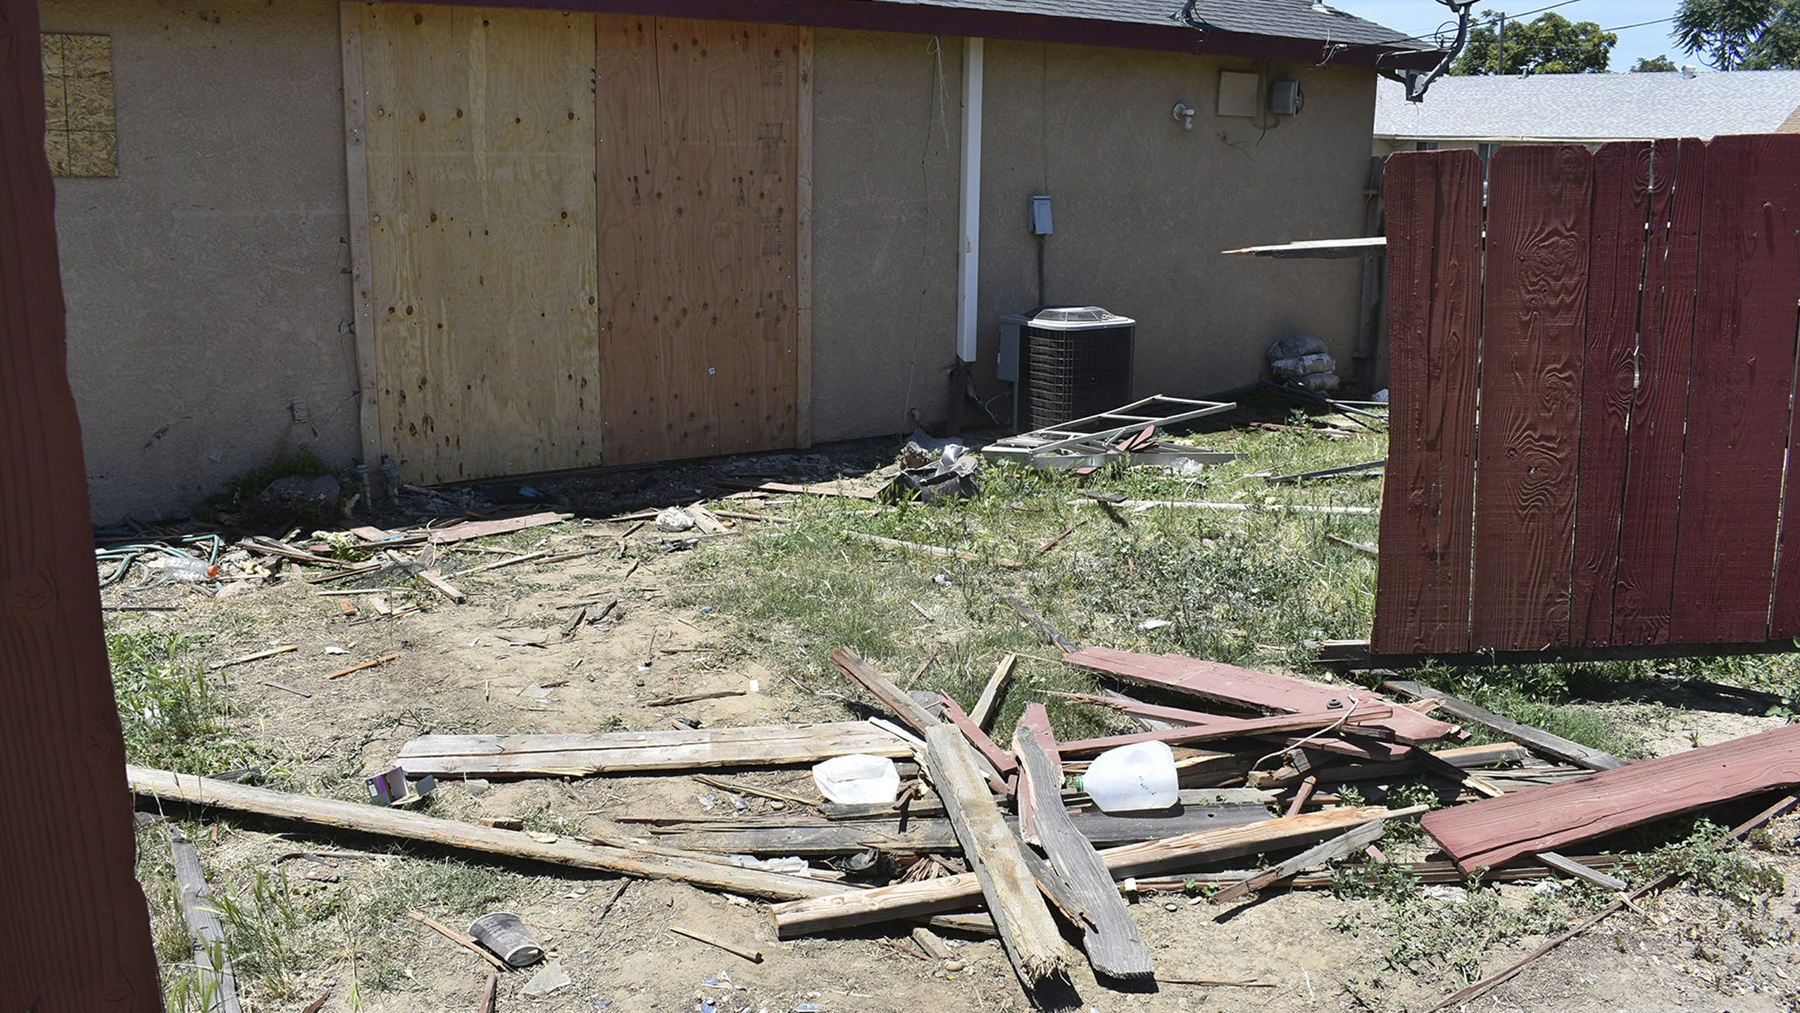 Woman, 2 girls killed after SUV crashes into California home_1560206334138.jpg.jpg